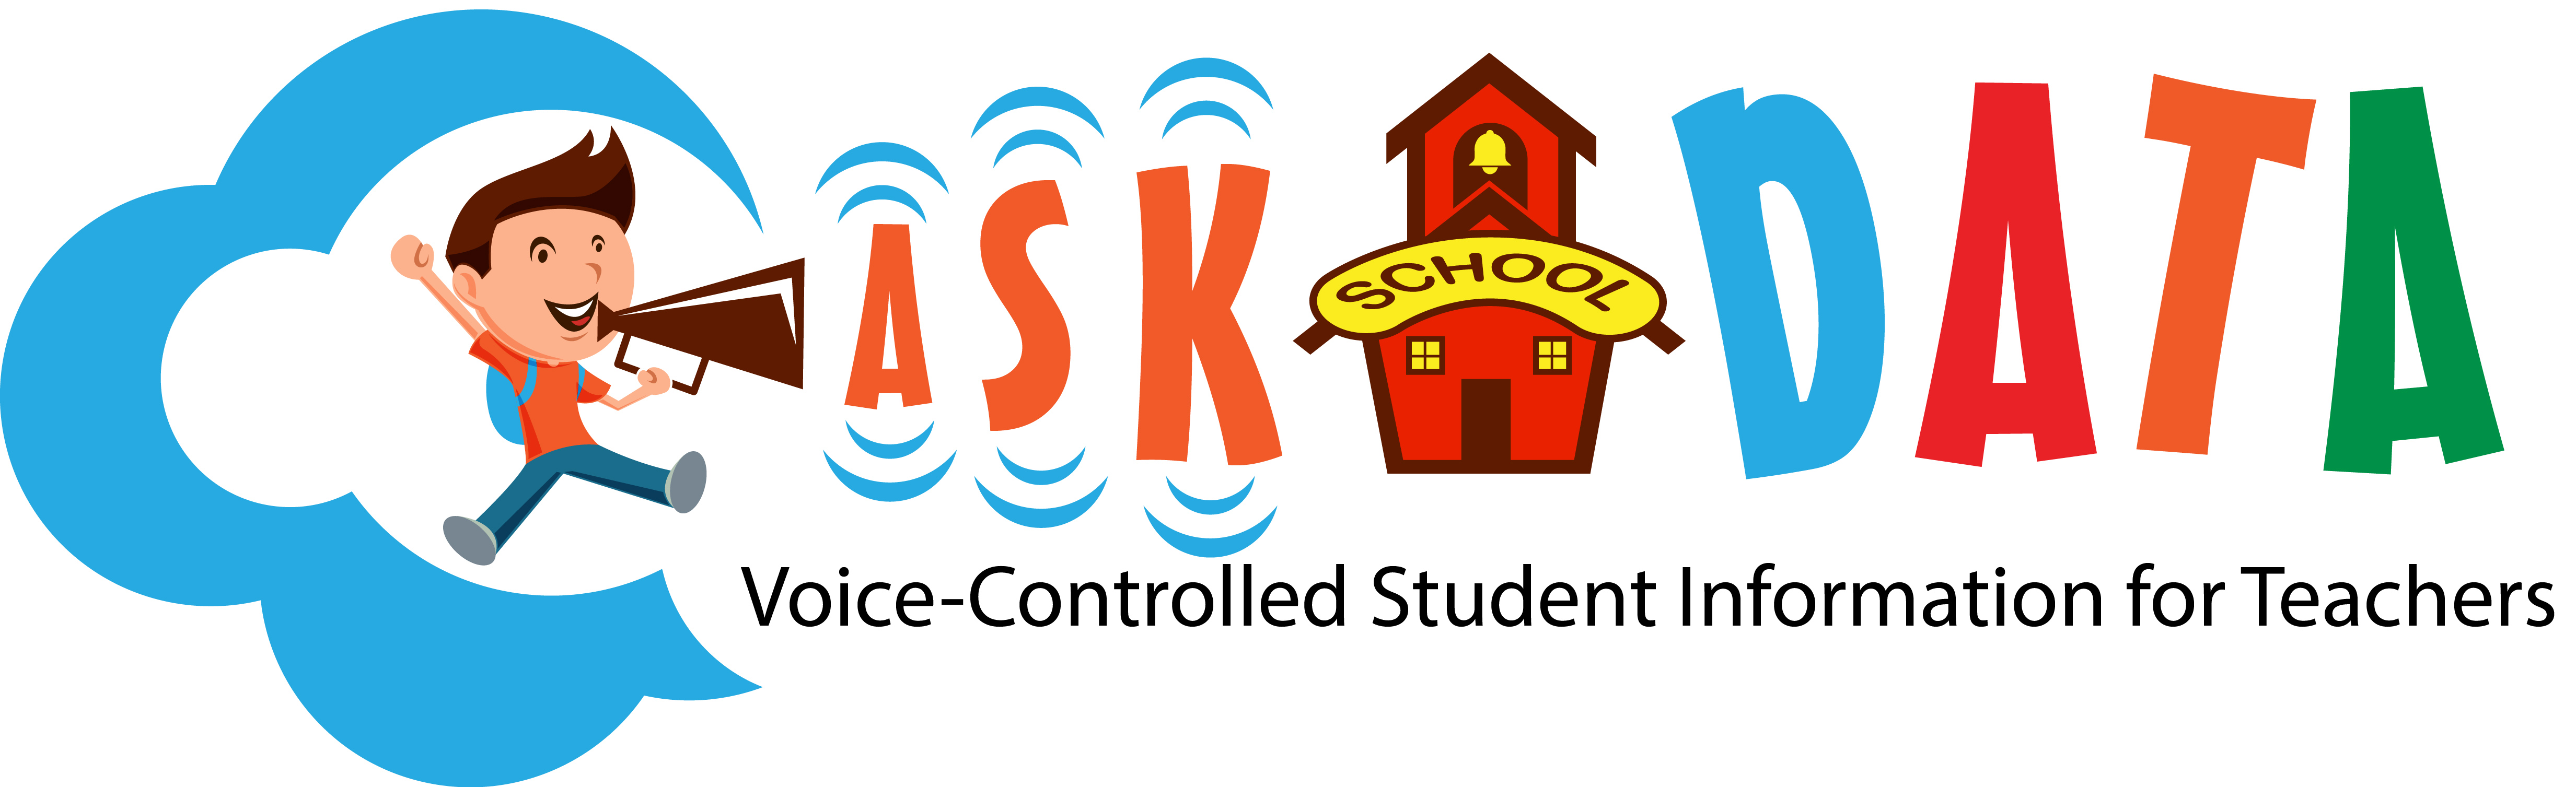 Ask School Data logo